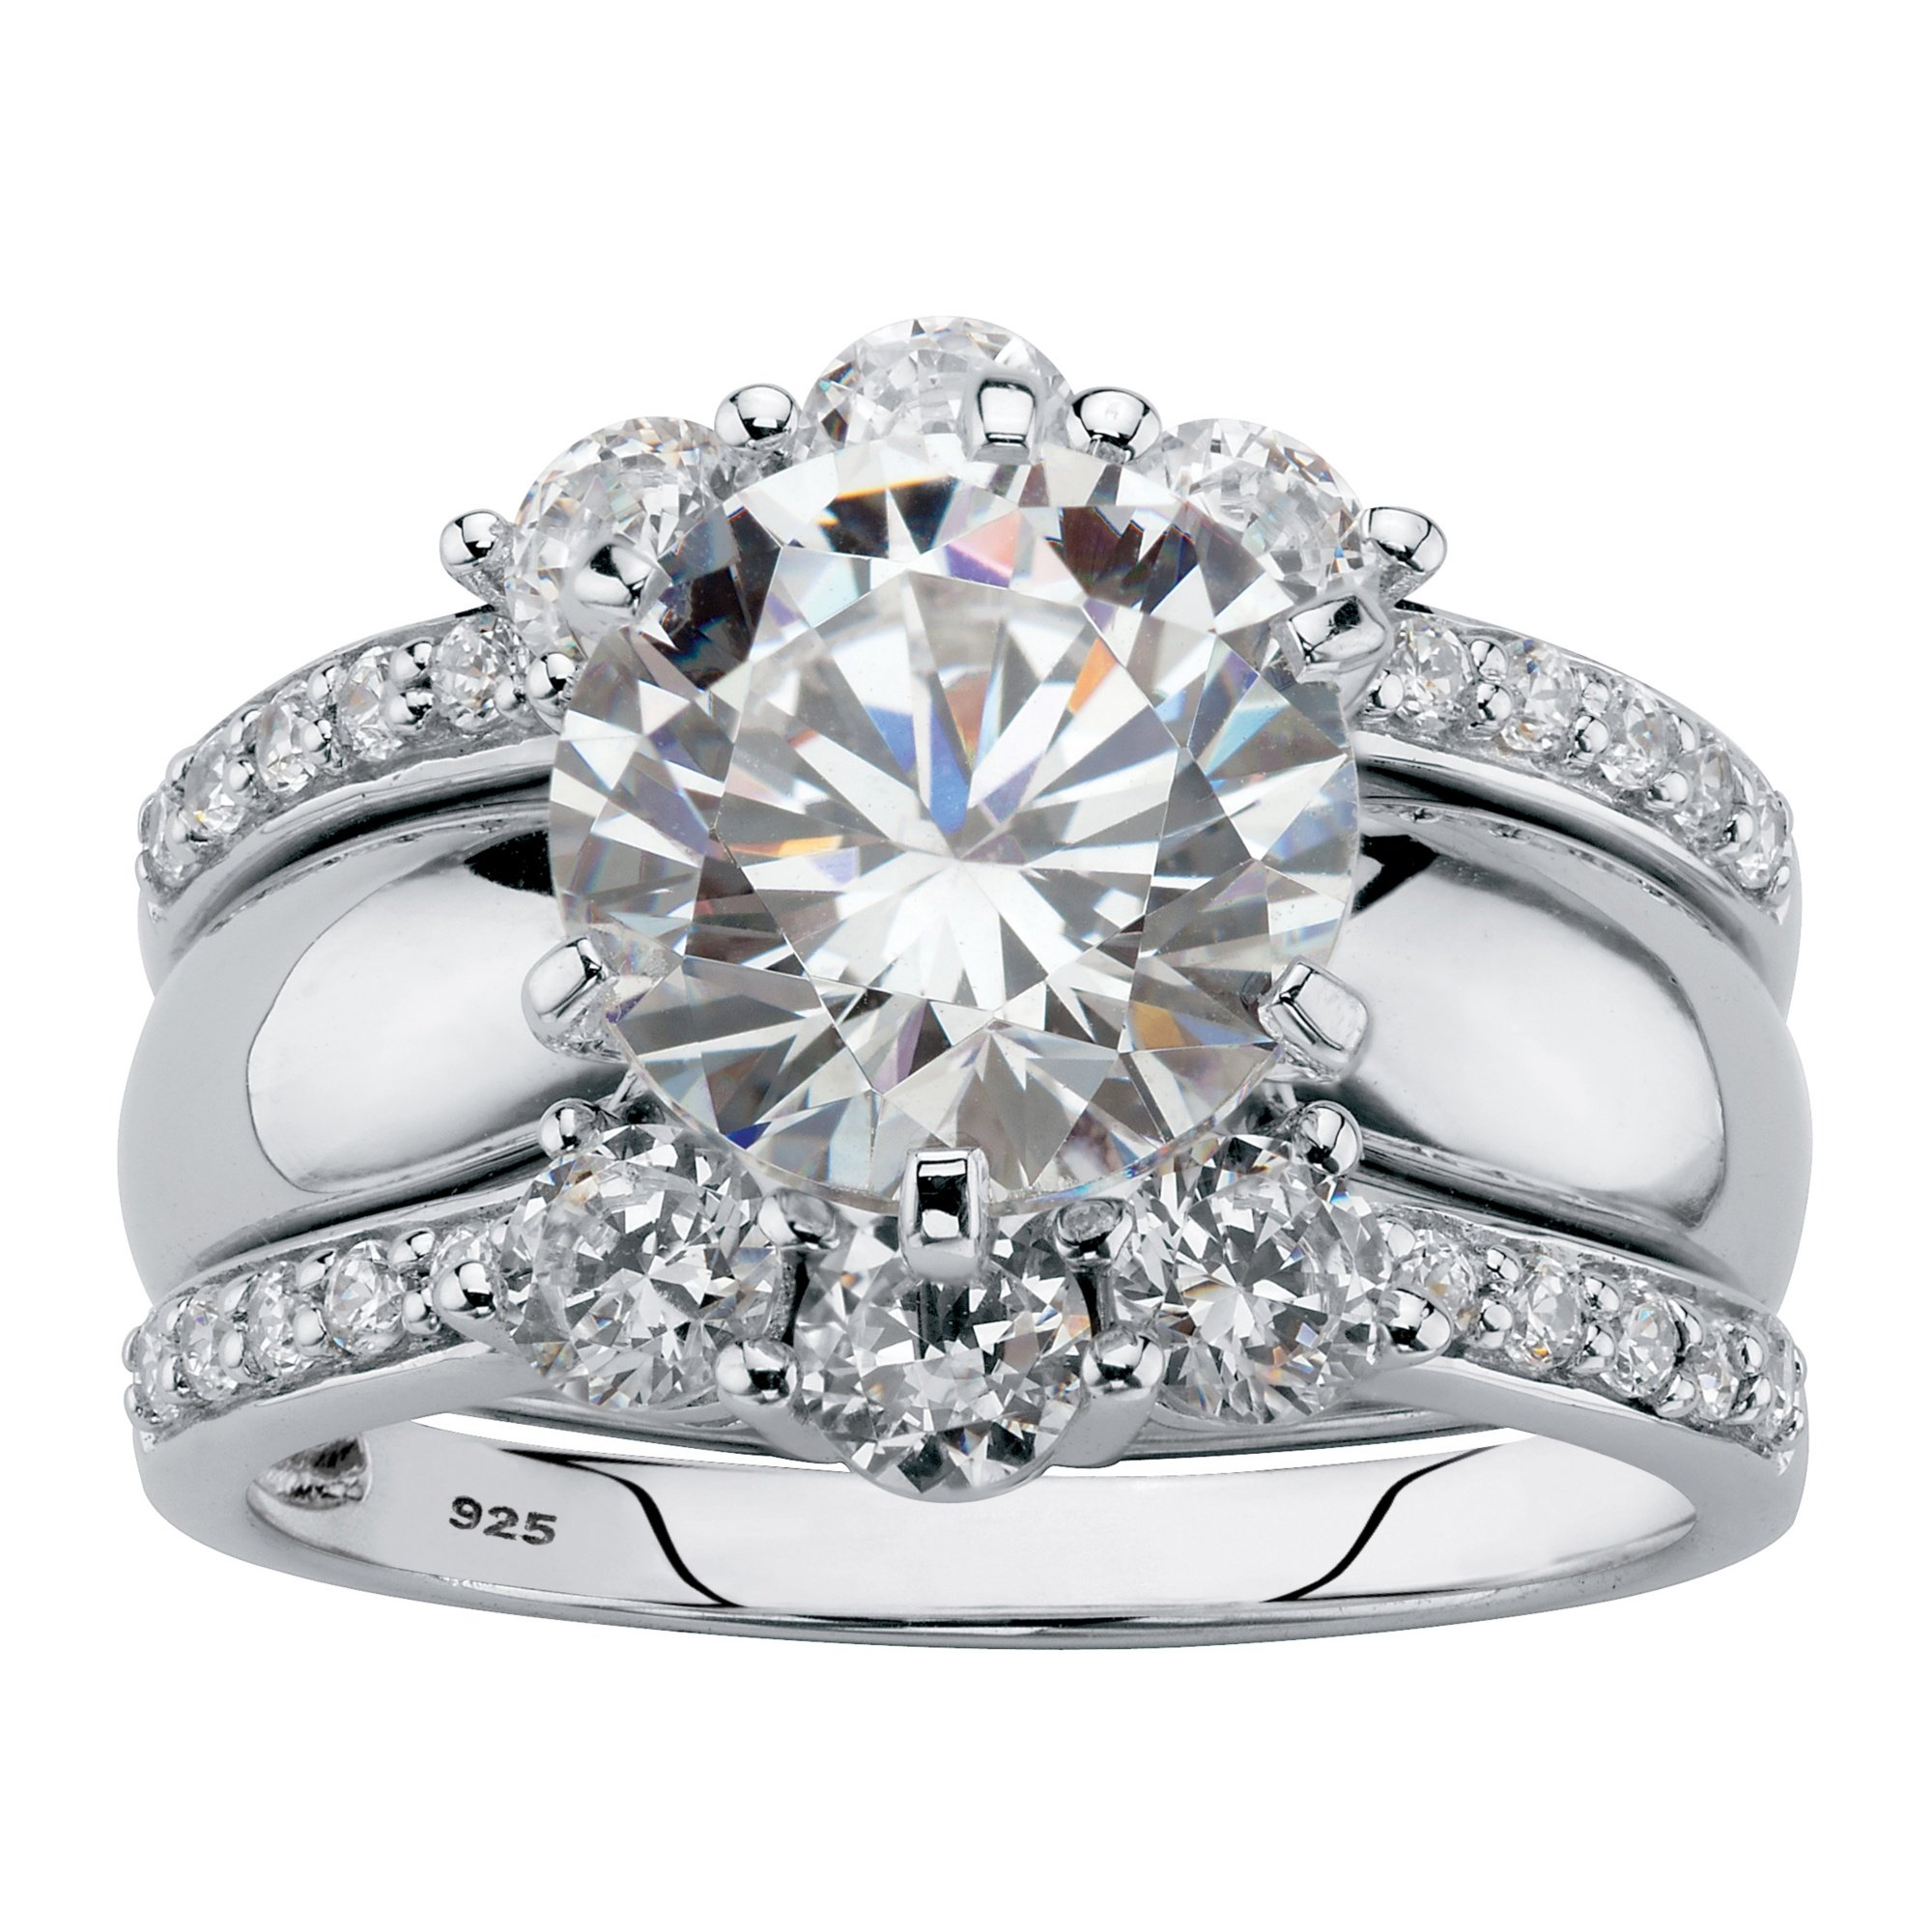 Platinum over Sterling Silver Round Cubic Zirconia Jacket Wedding Ring Set Size 8 by Palm Beach Jewelry